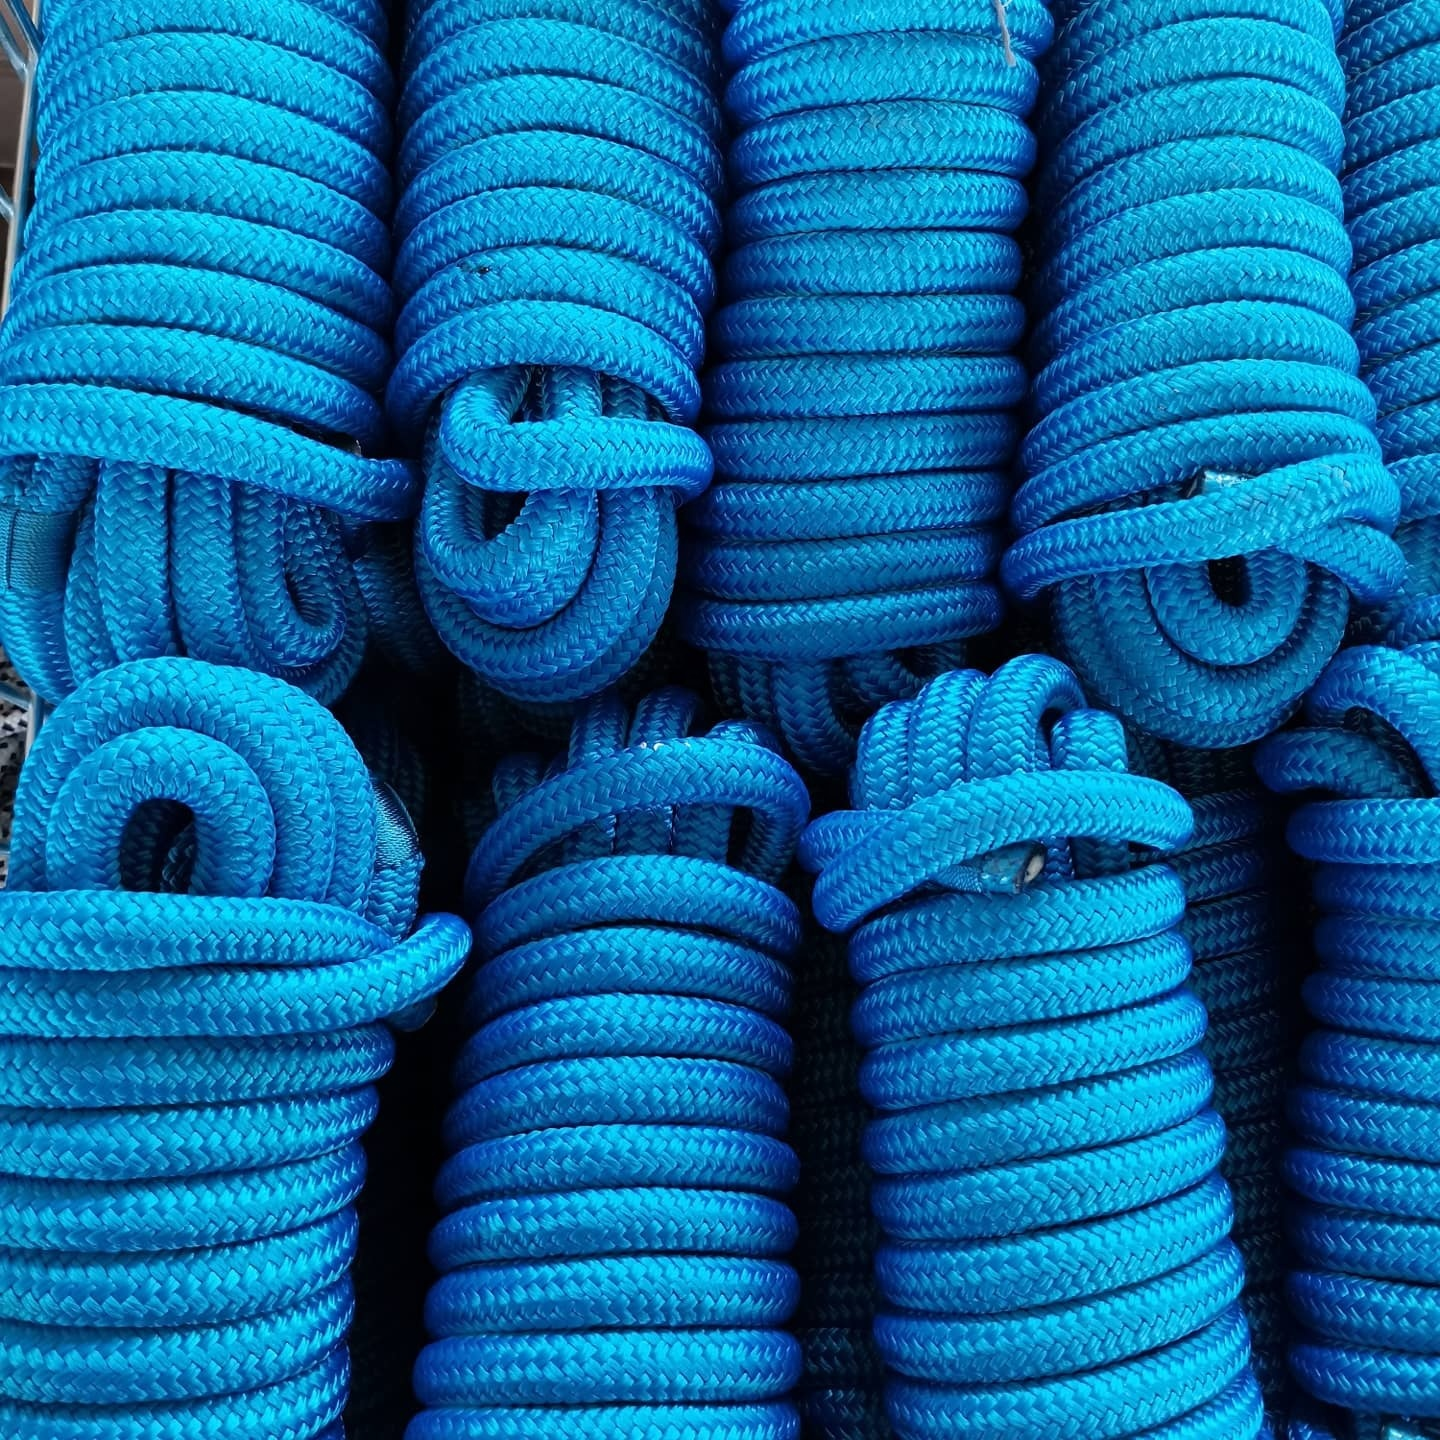 Hot performance Factory Price customized package and sizedouble braided polyester/ nylon mooring marine rope line 3/8 1/2